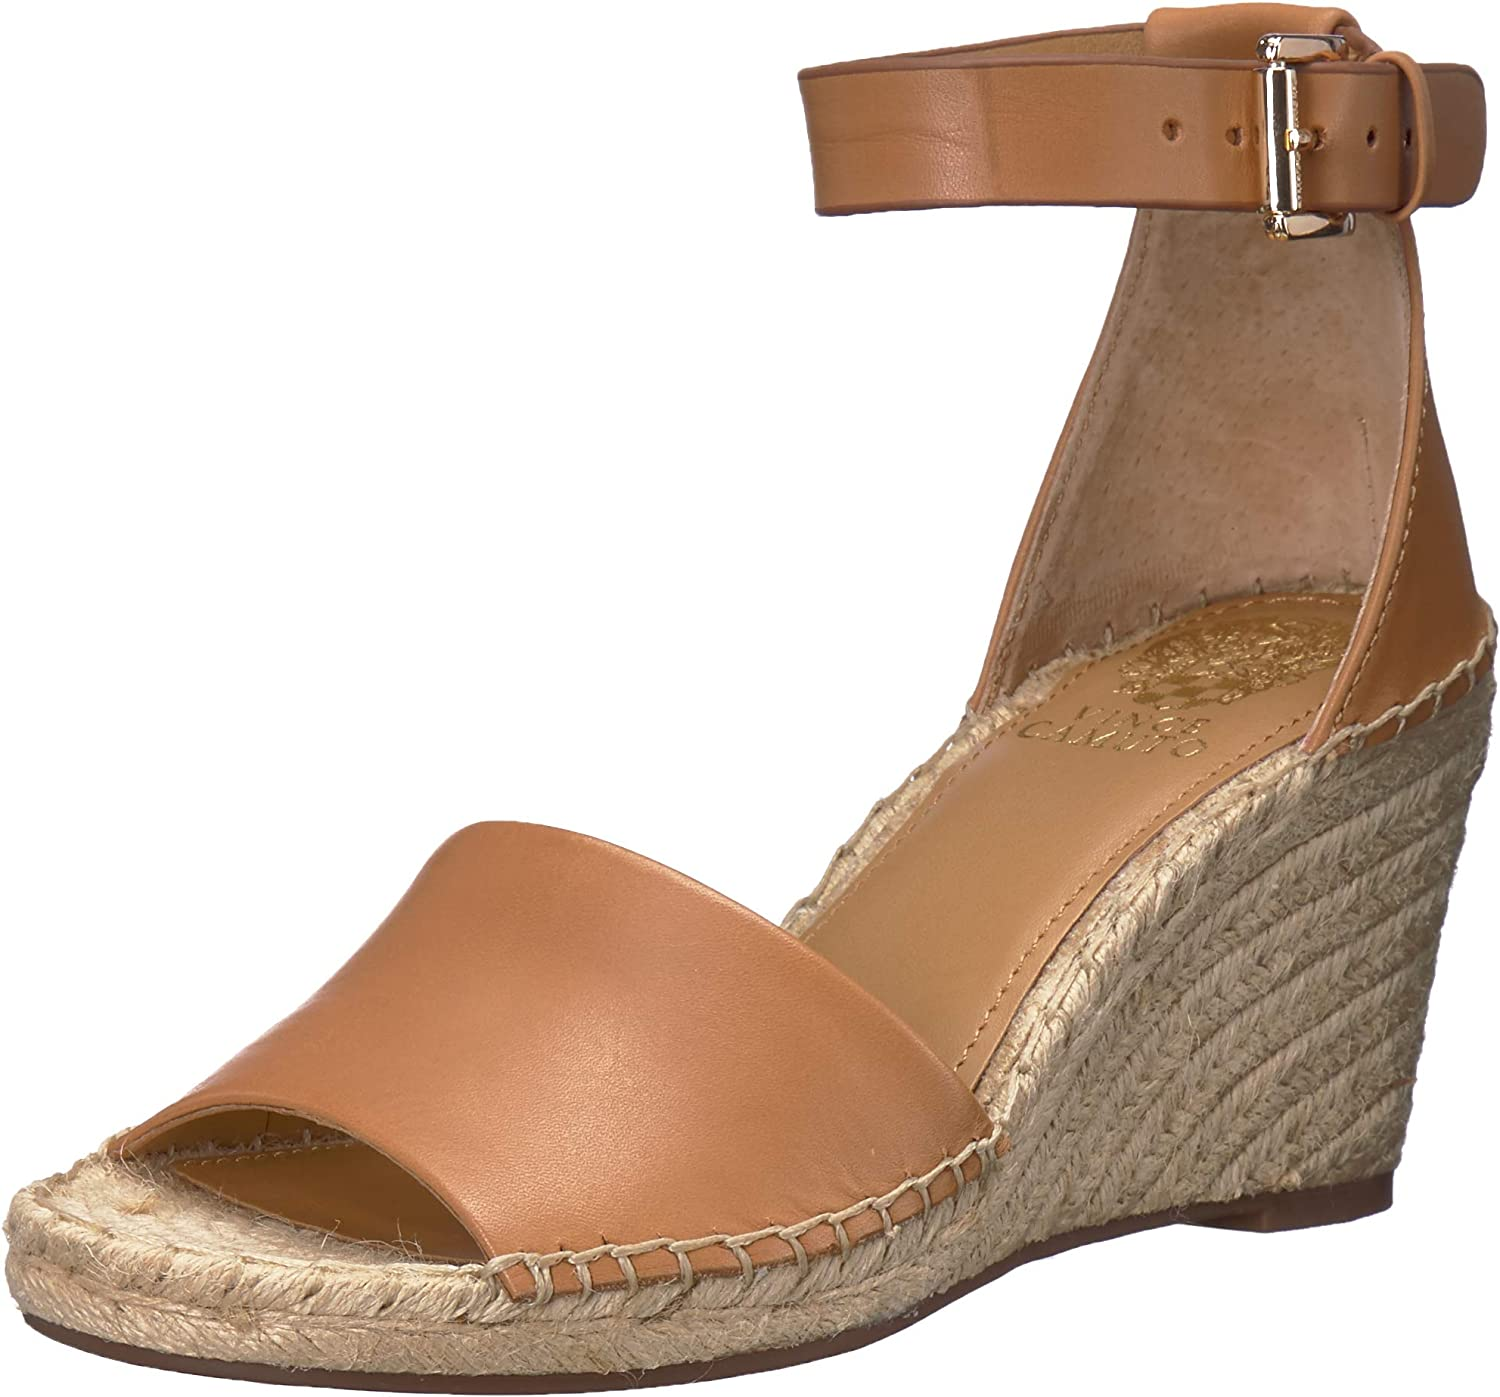 Vince Camuto Women's Leera Espadrille Wedge Sandal, tan, 7 Medium US